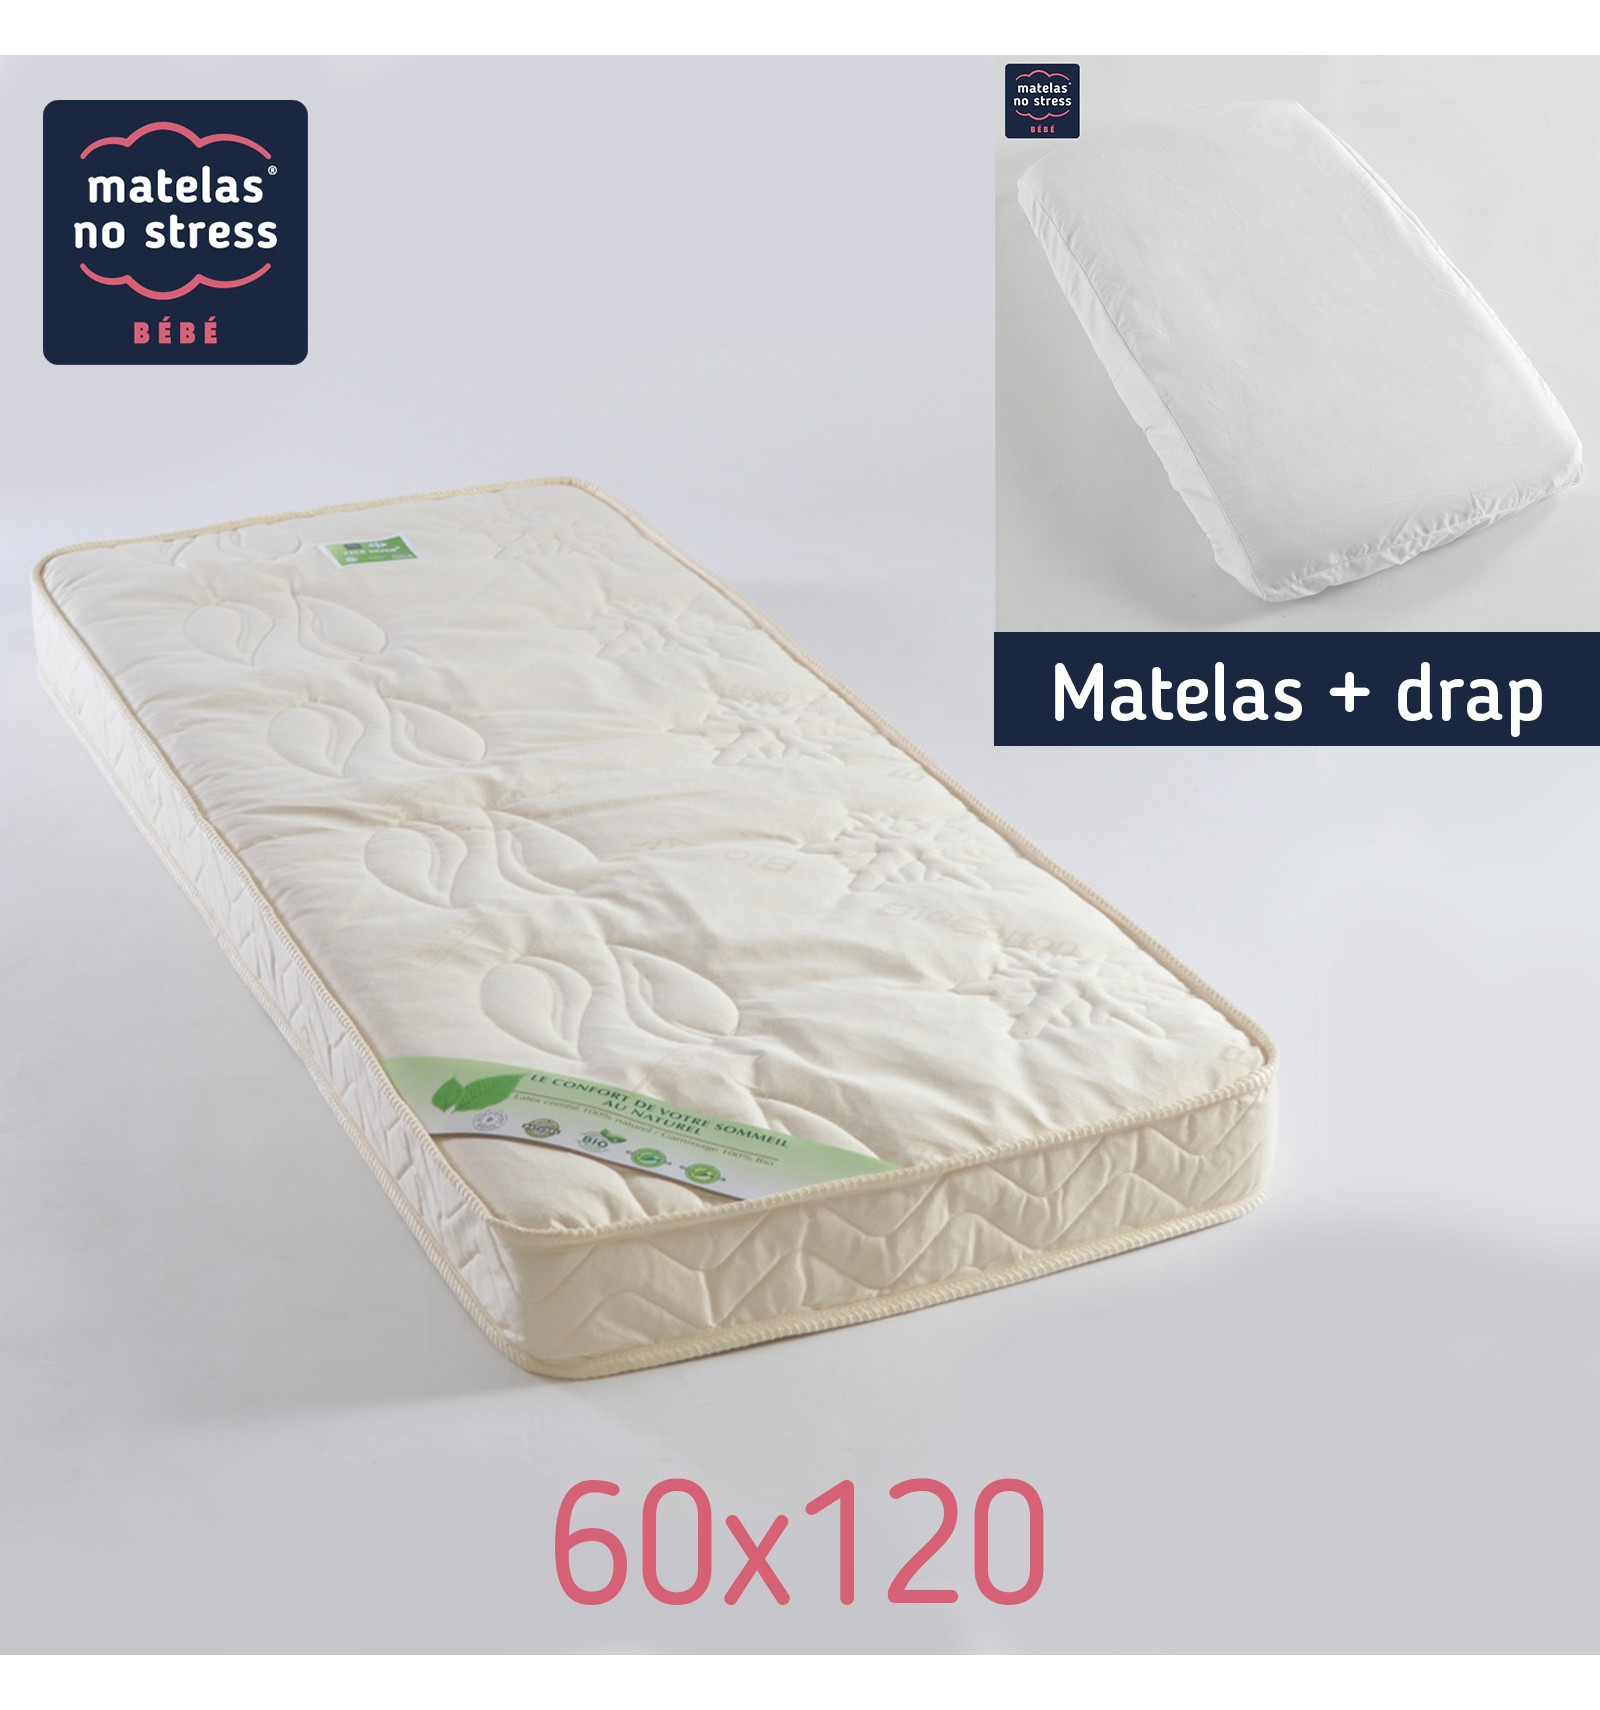 drap housse 160x200 matelas pais protge matelas x gr bonnet cm with drap housse x bonnet cm. Black Bedroom Furniture Sets. Home Design Ideas